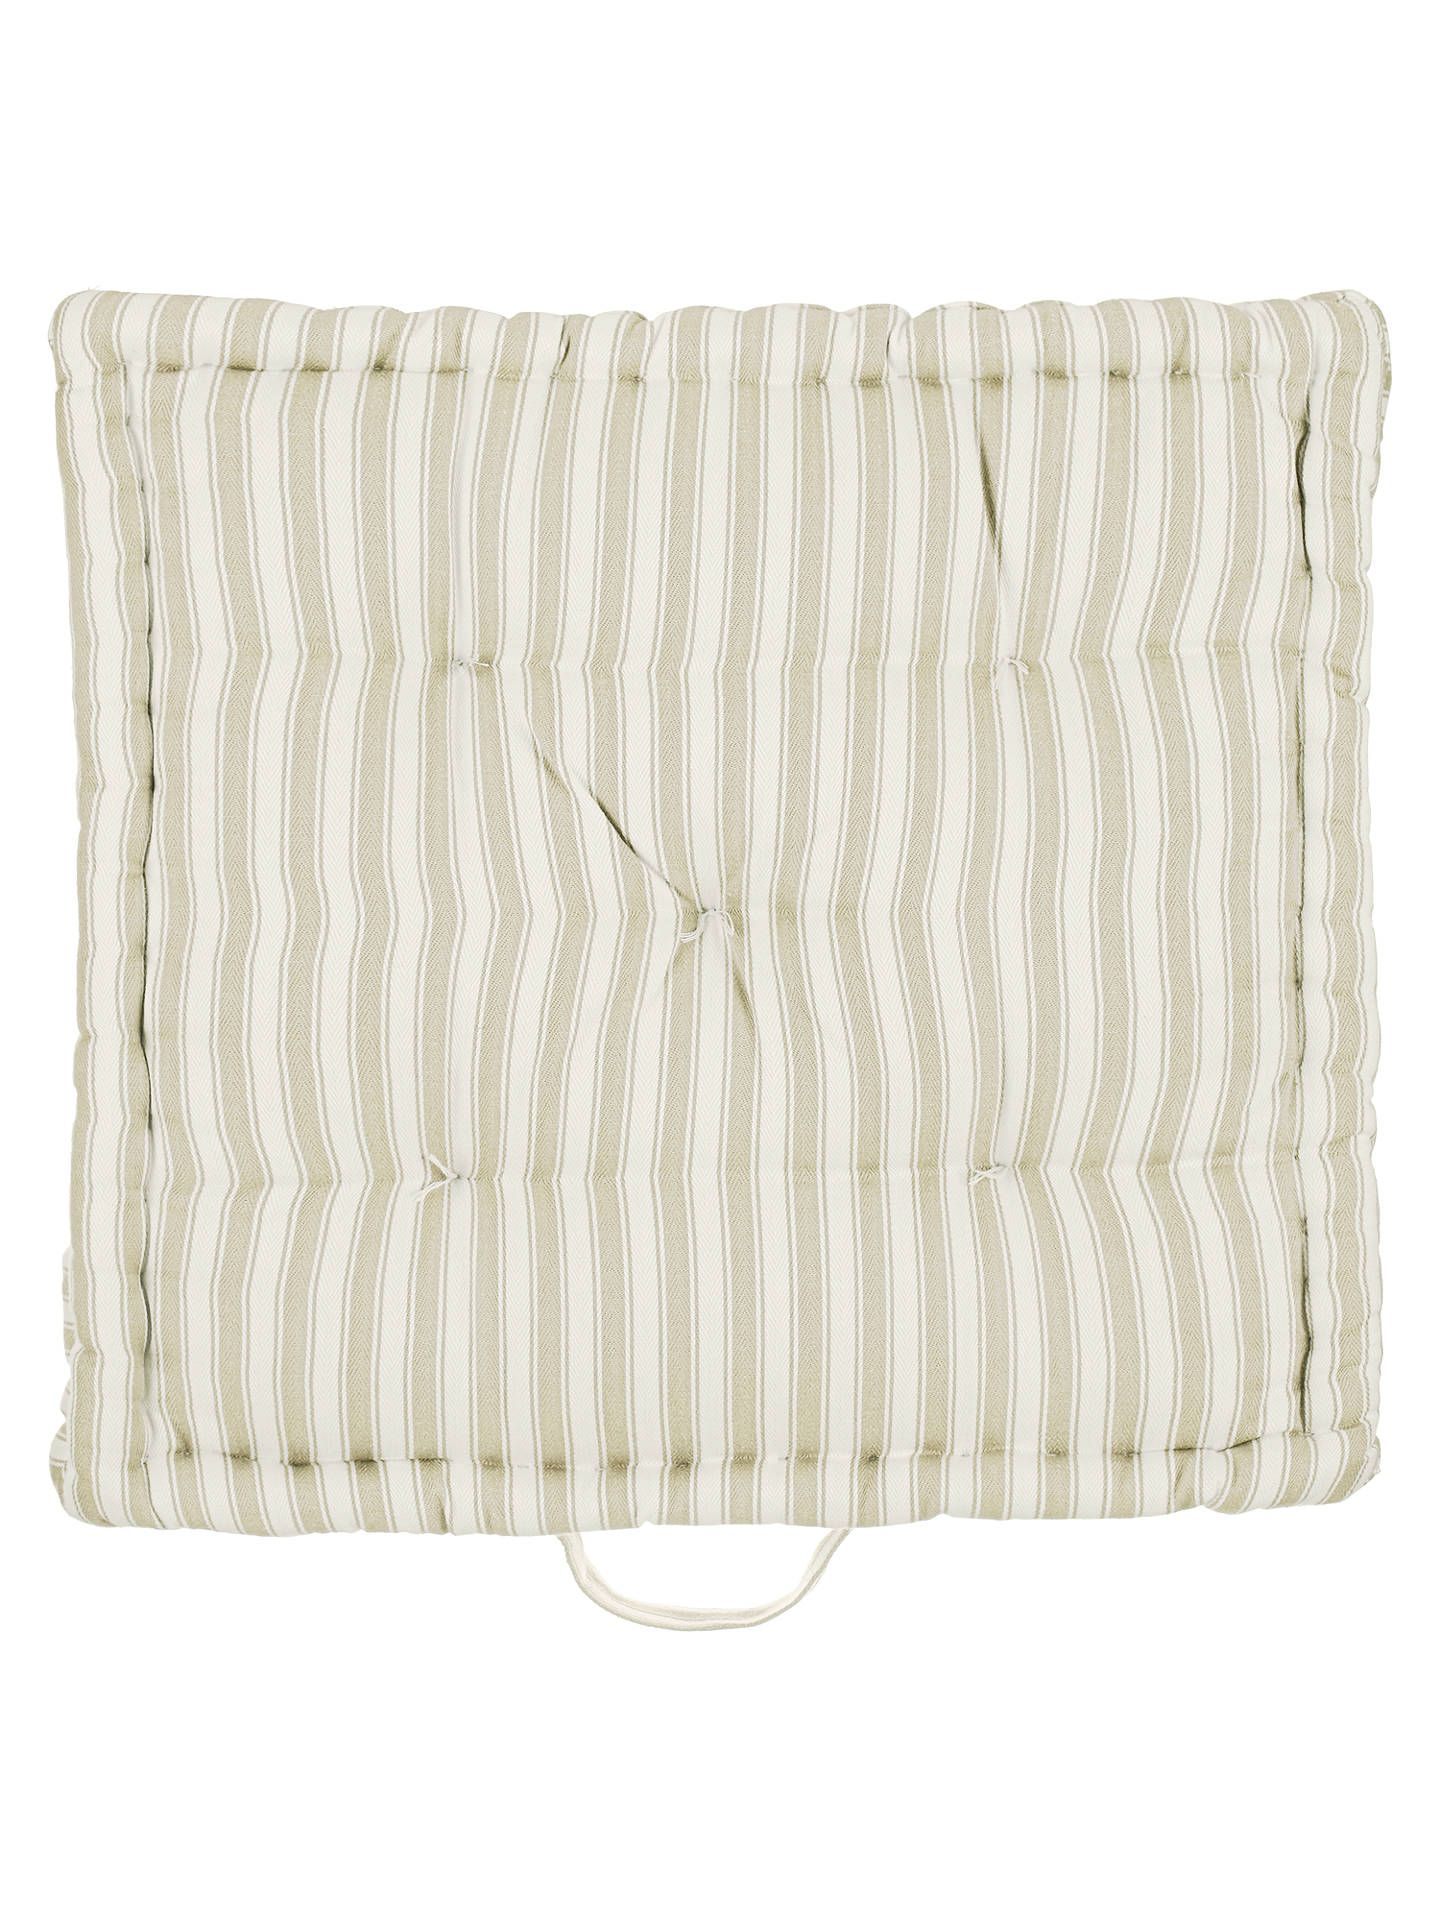 Ticking Stripe Boxed Seat Pad Greige